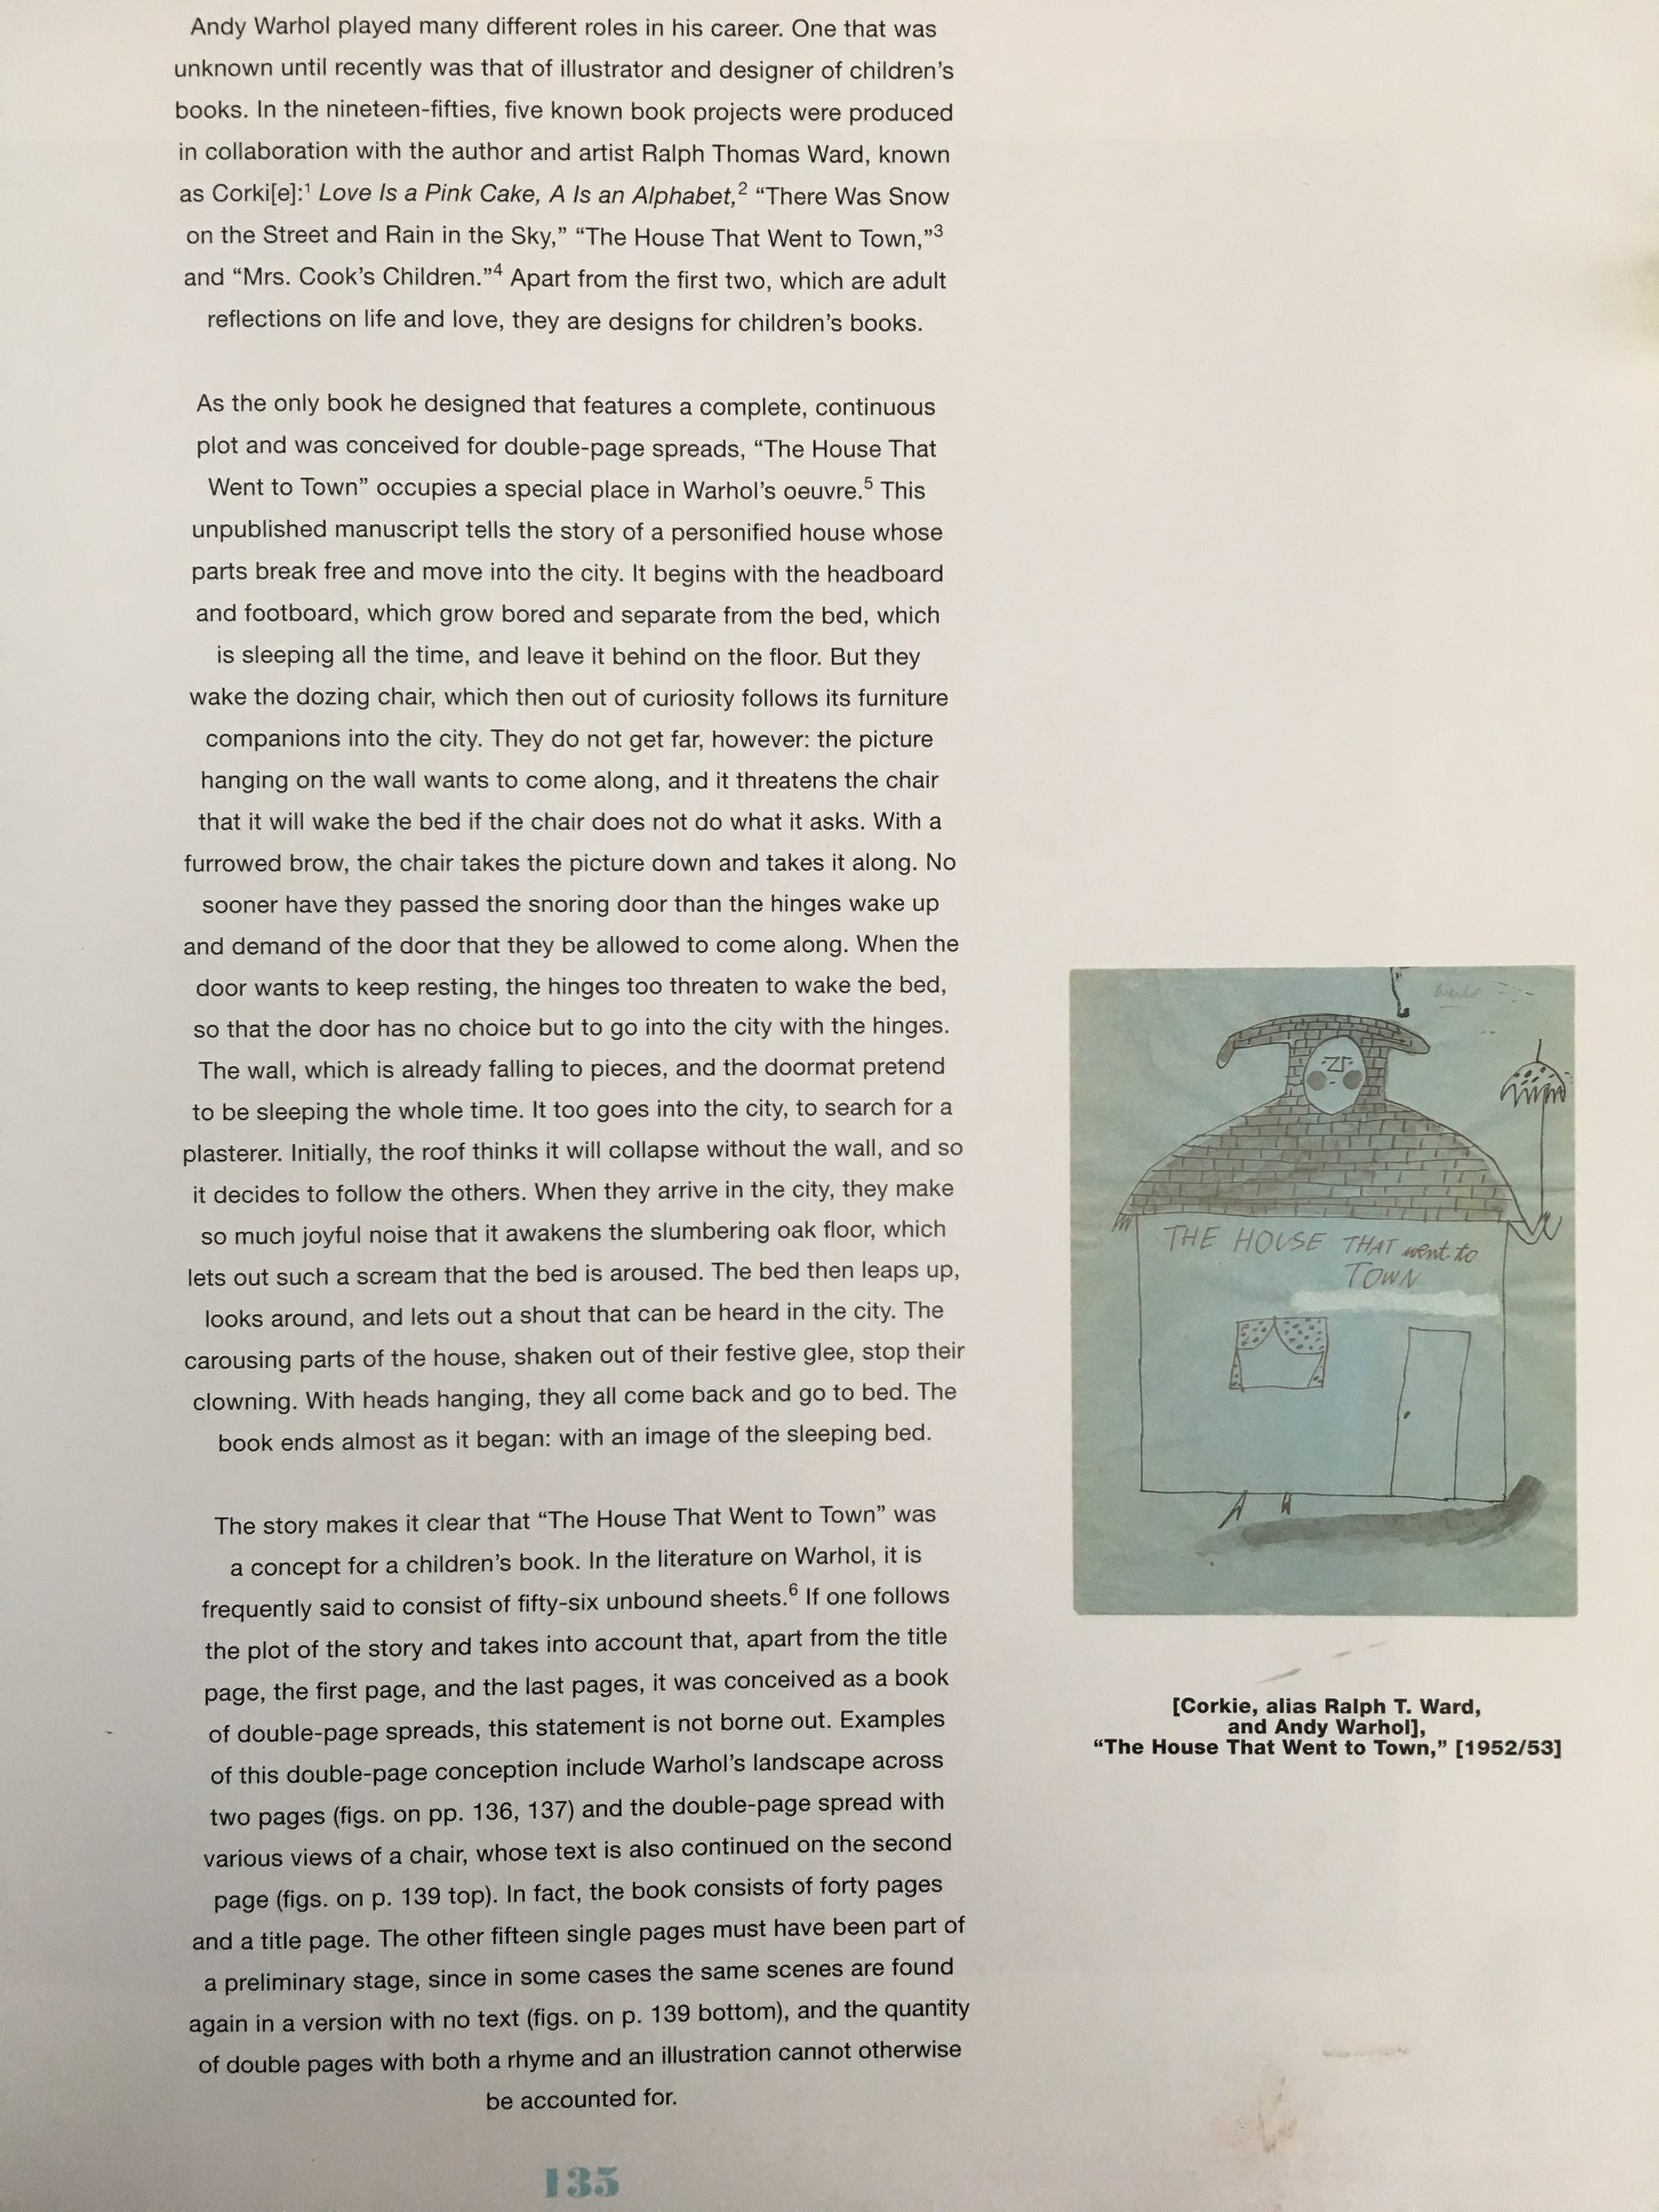 essay about  The House That Went to Town  by Andy Warhol